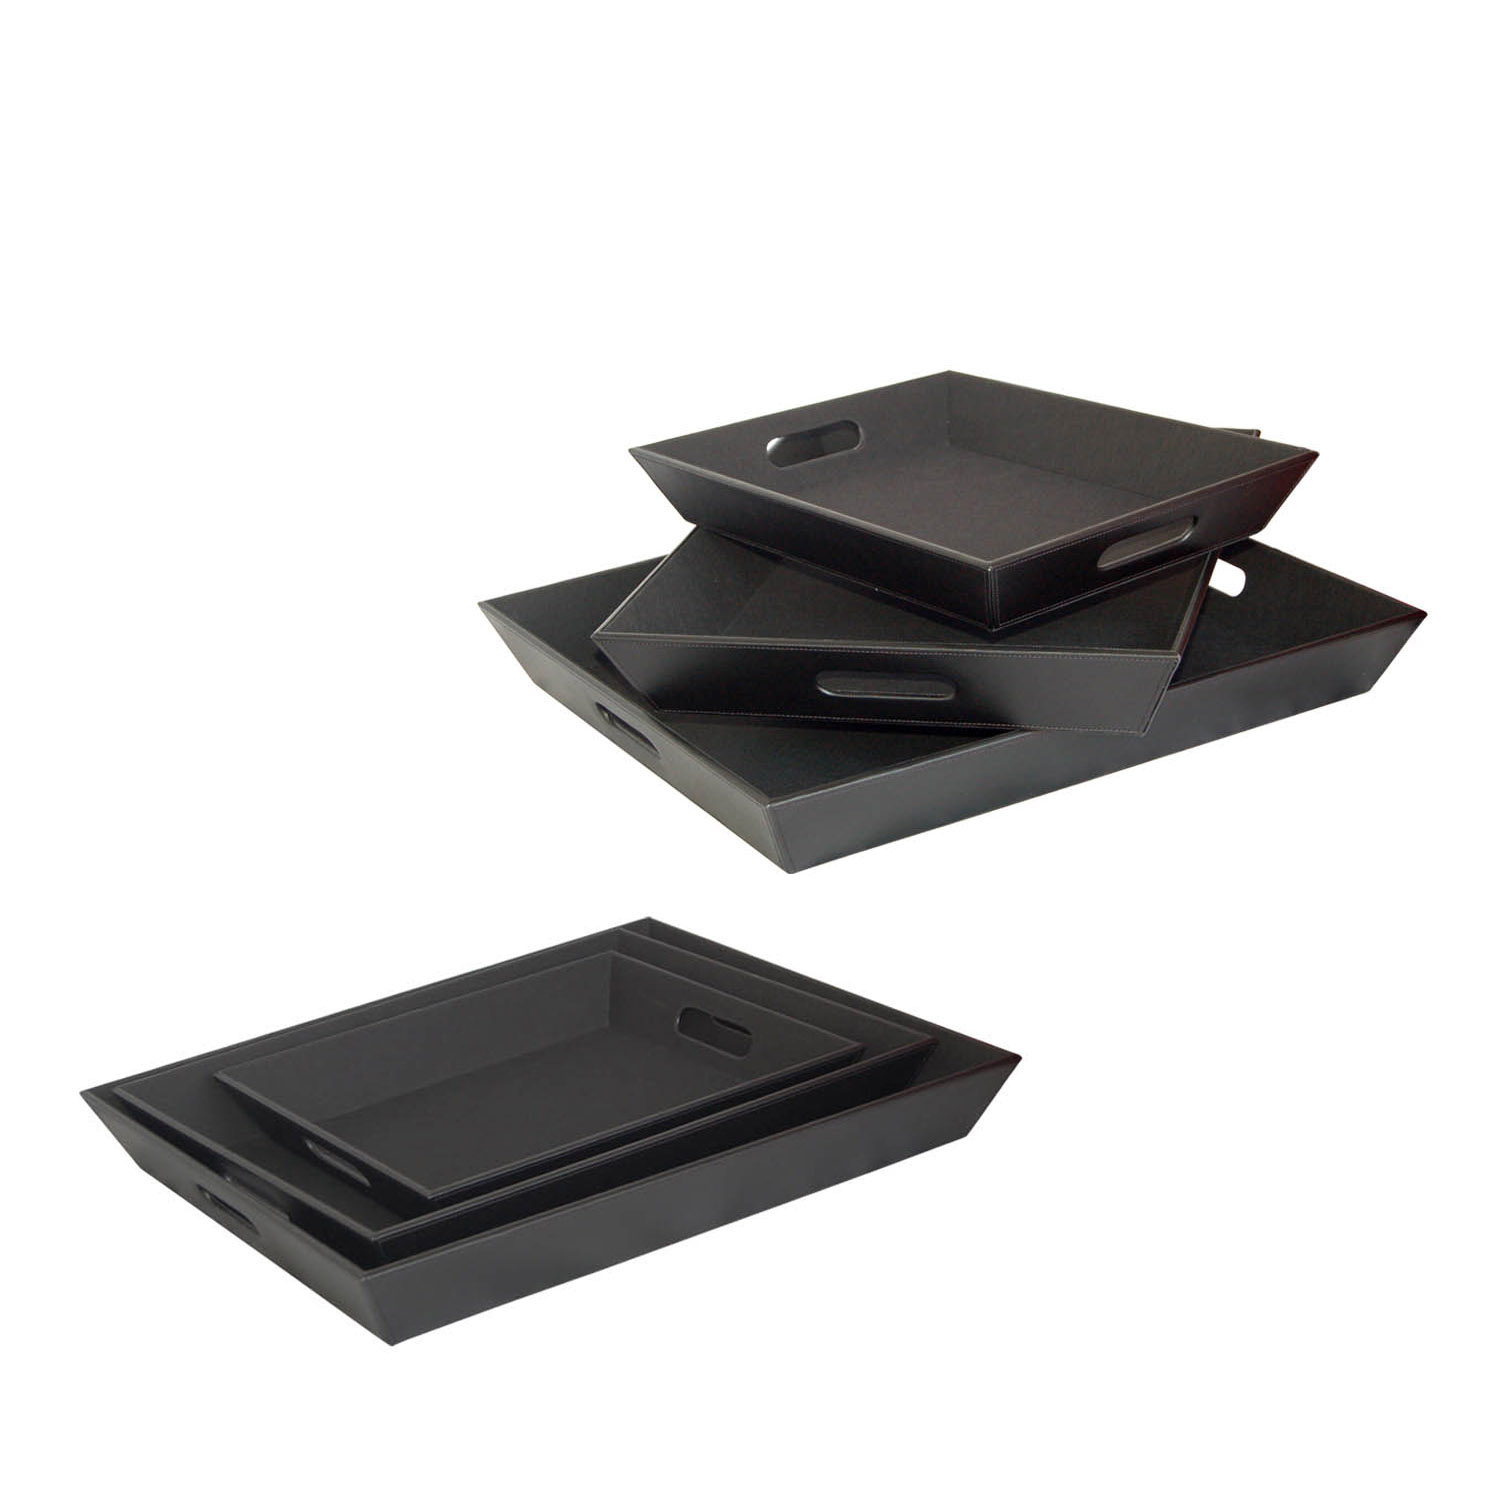 China supplier desktop design custom made document file leather tray